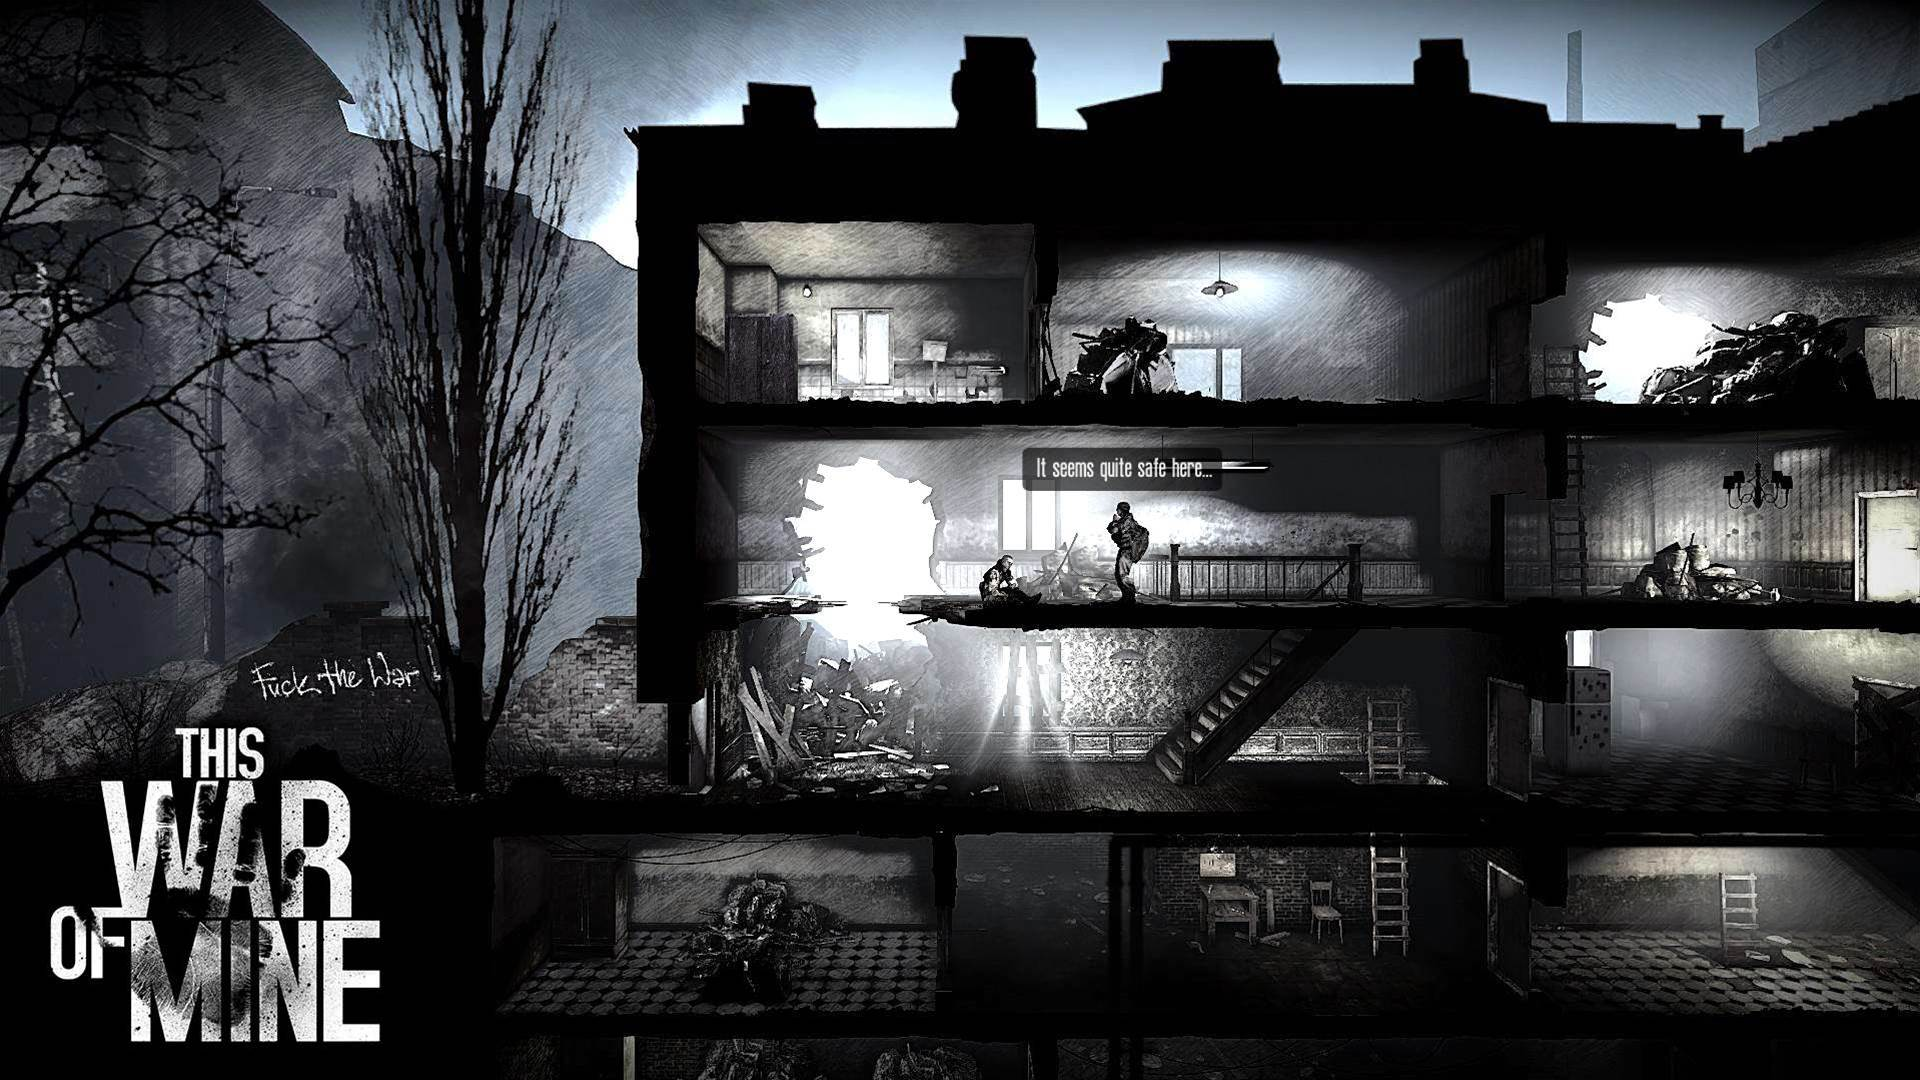 Discover the human cost of conflict in This War of Mine, out now